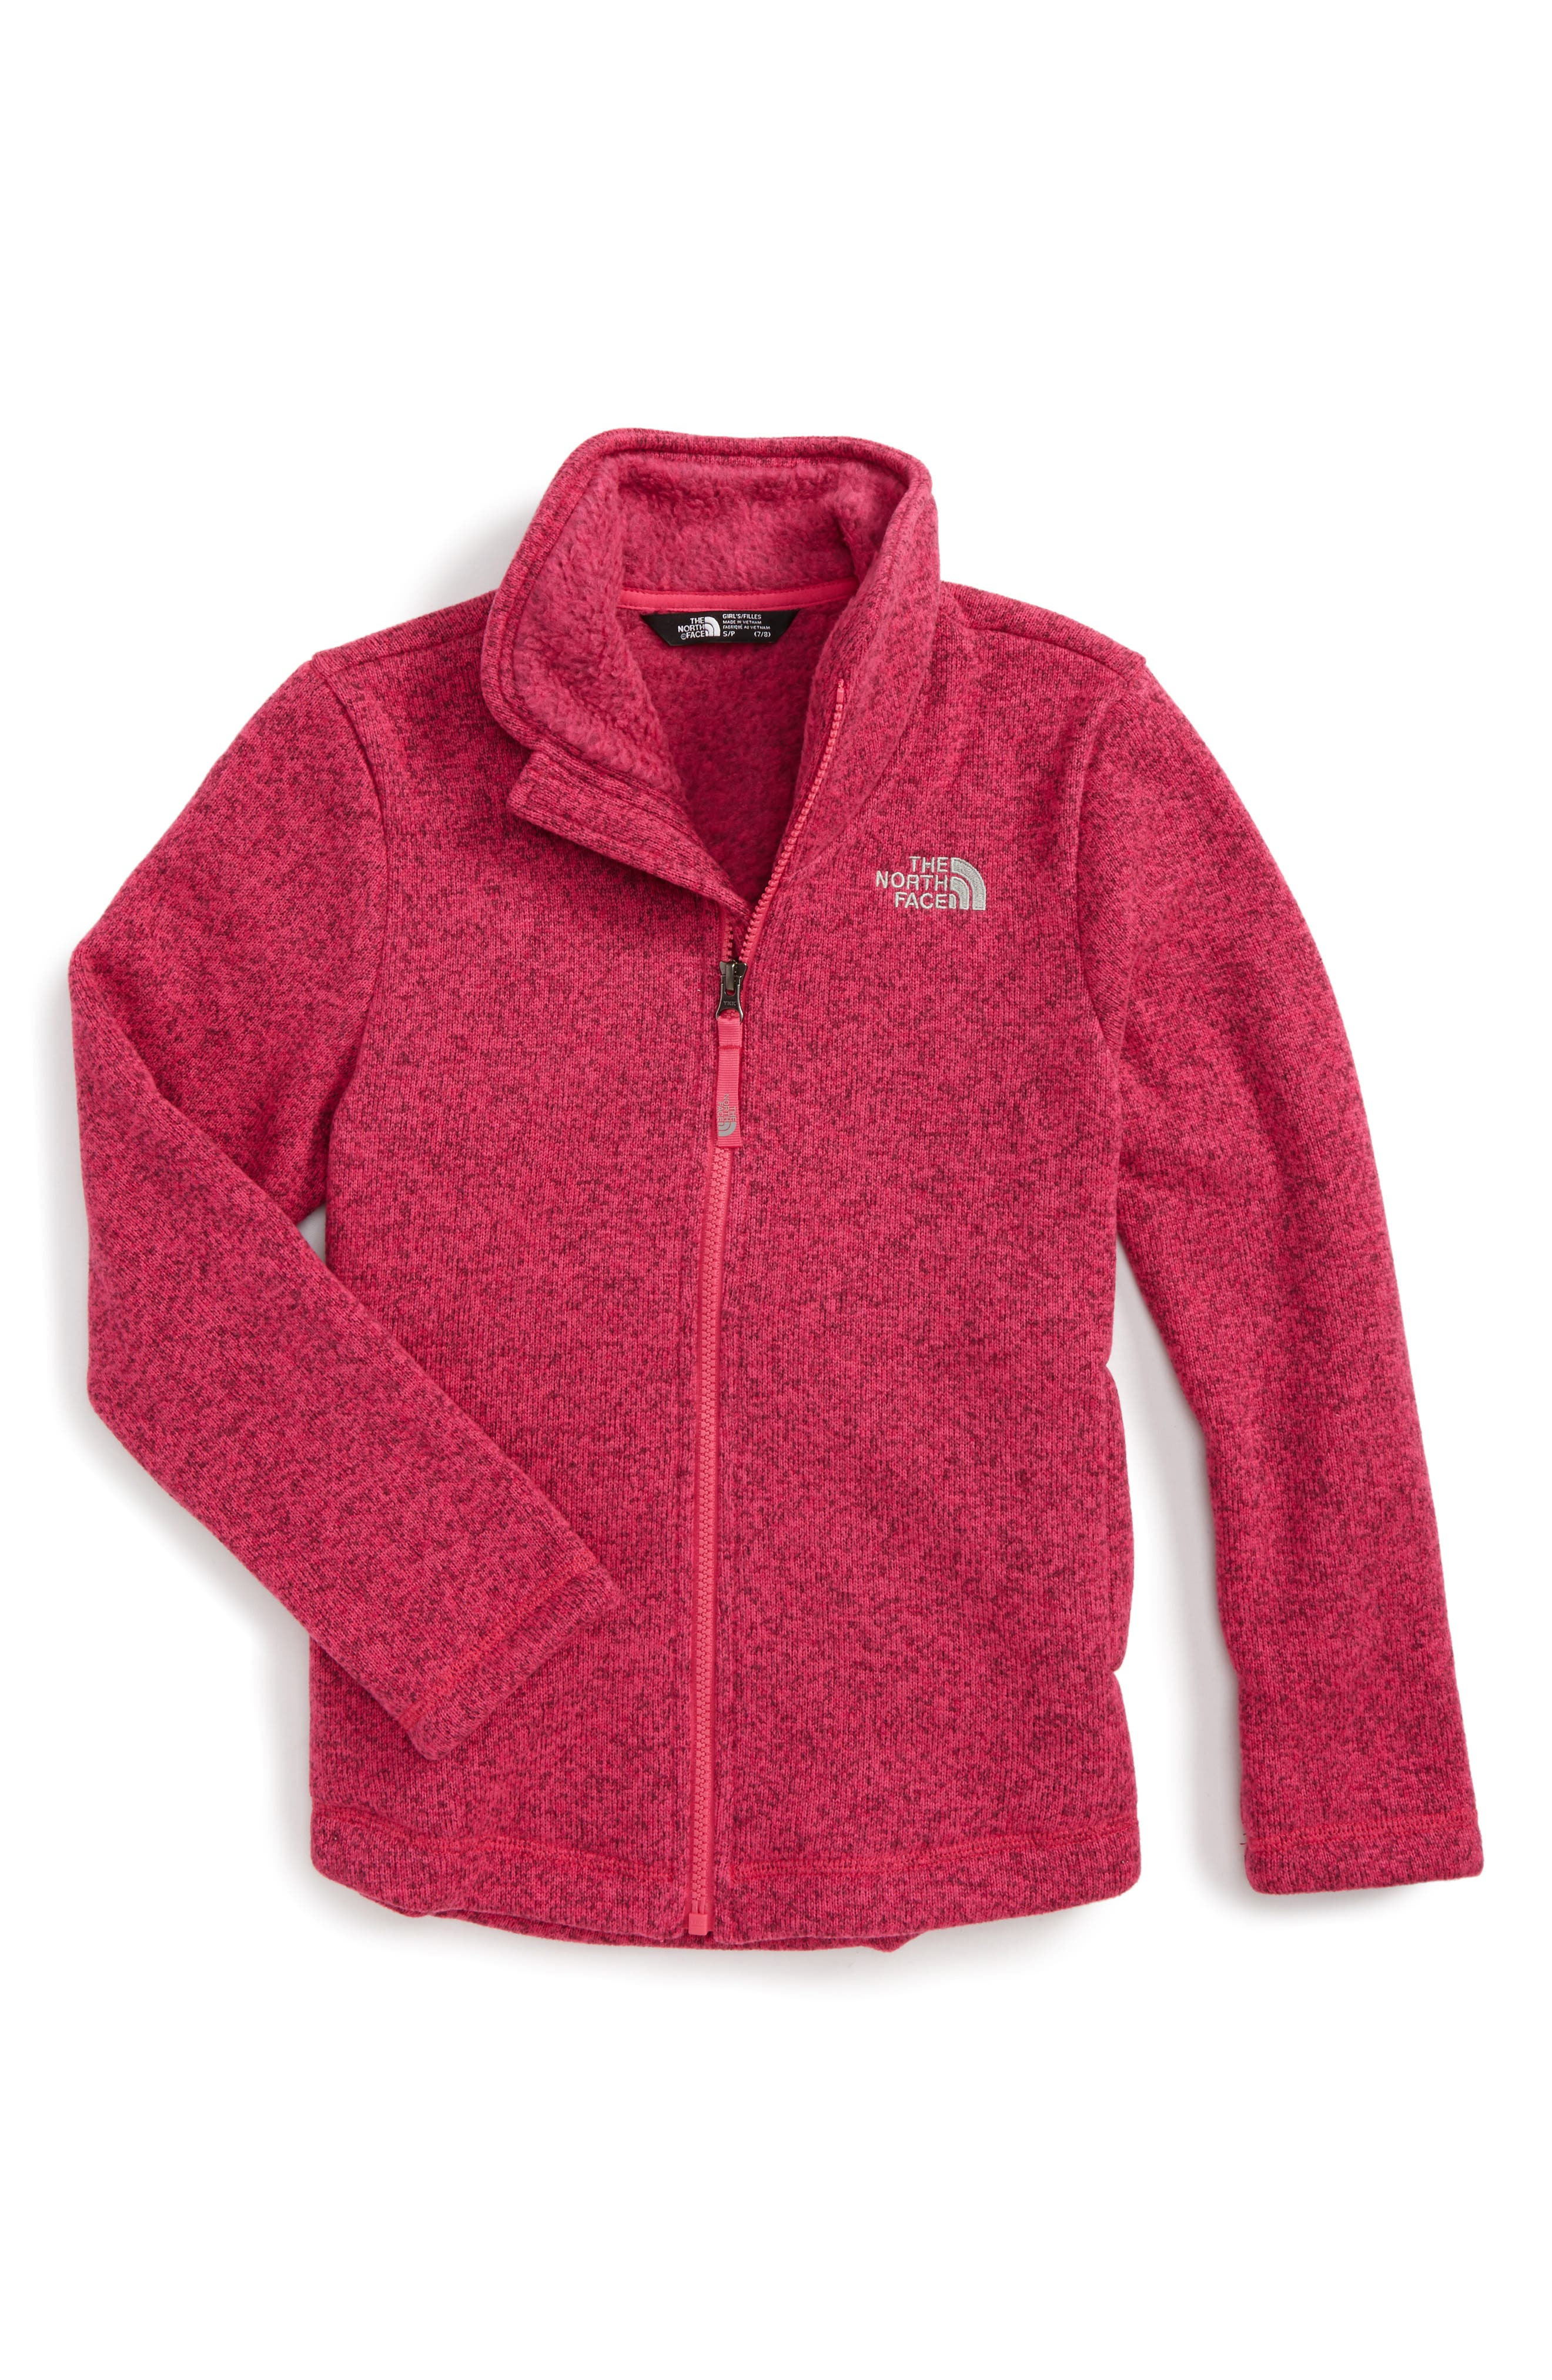 Crescent Fleece Jacket,                             Main thumbnail 1, color,                             Petticoat Pink Heather